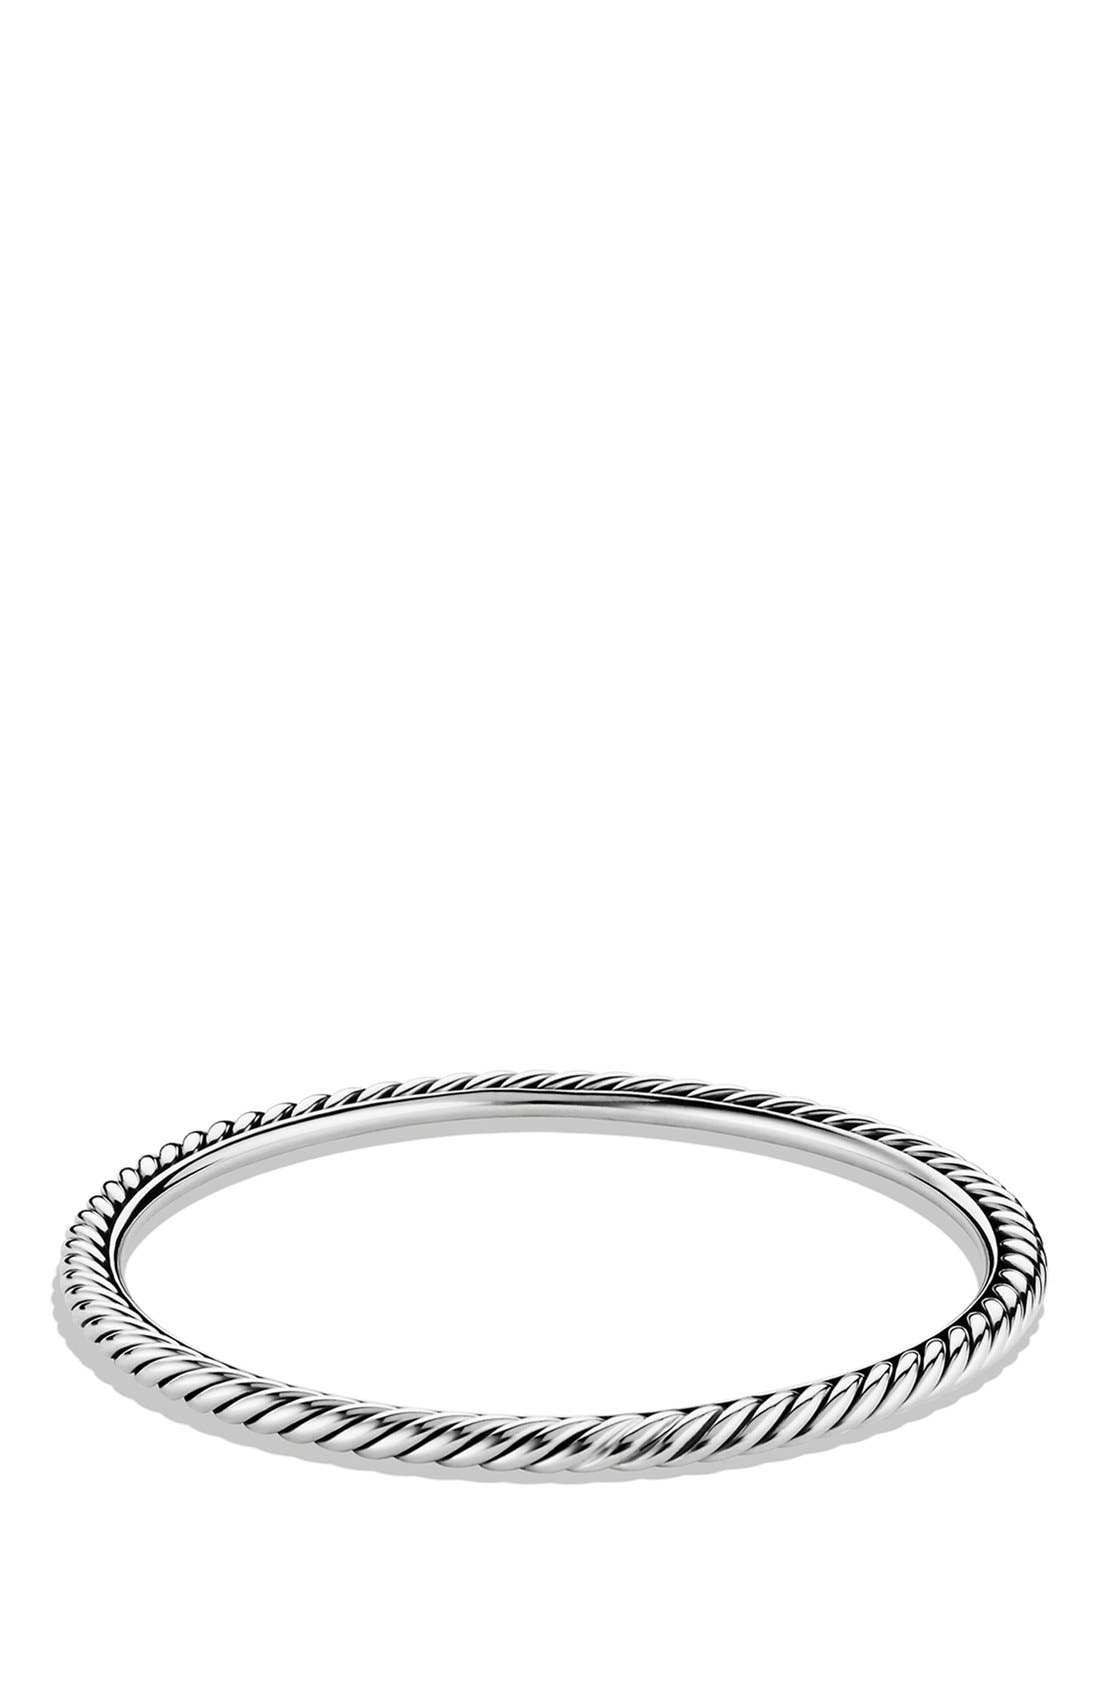 Cable Classics Bangle, 4mm,                         Main,                         color, Silver